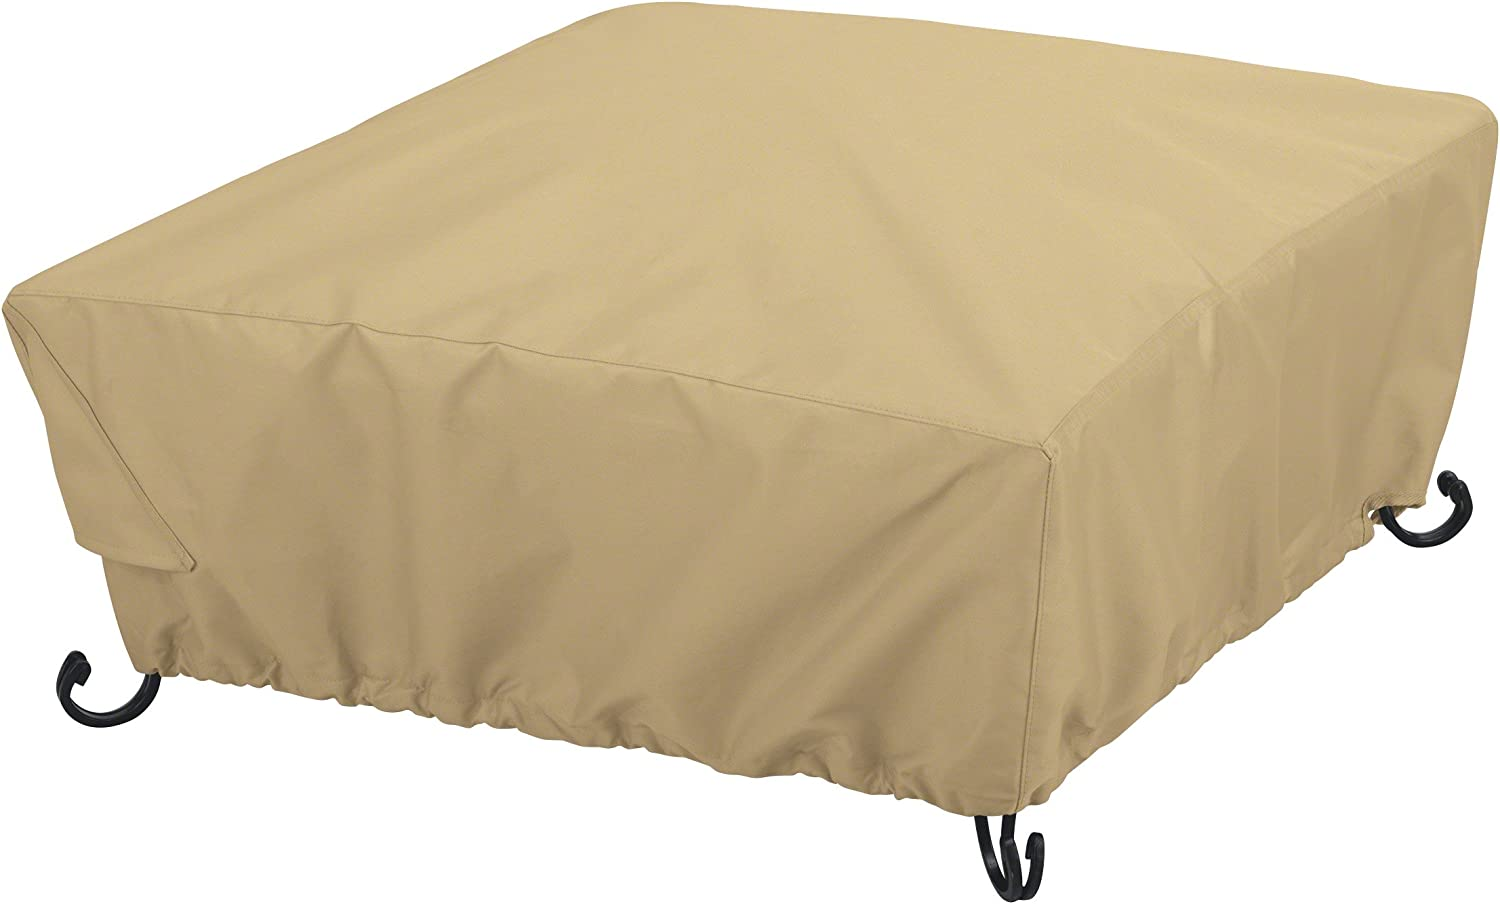 Classic Accessories Terrazzo Full Coverage Square Fire Pit Cover, 30""